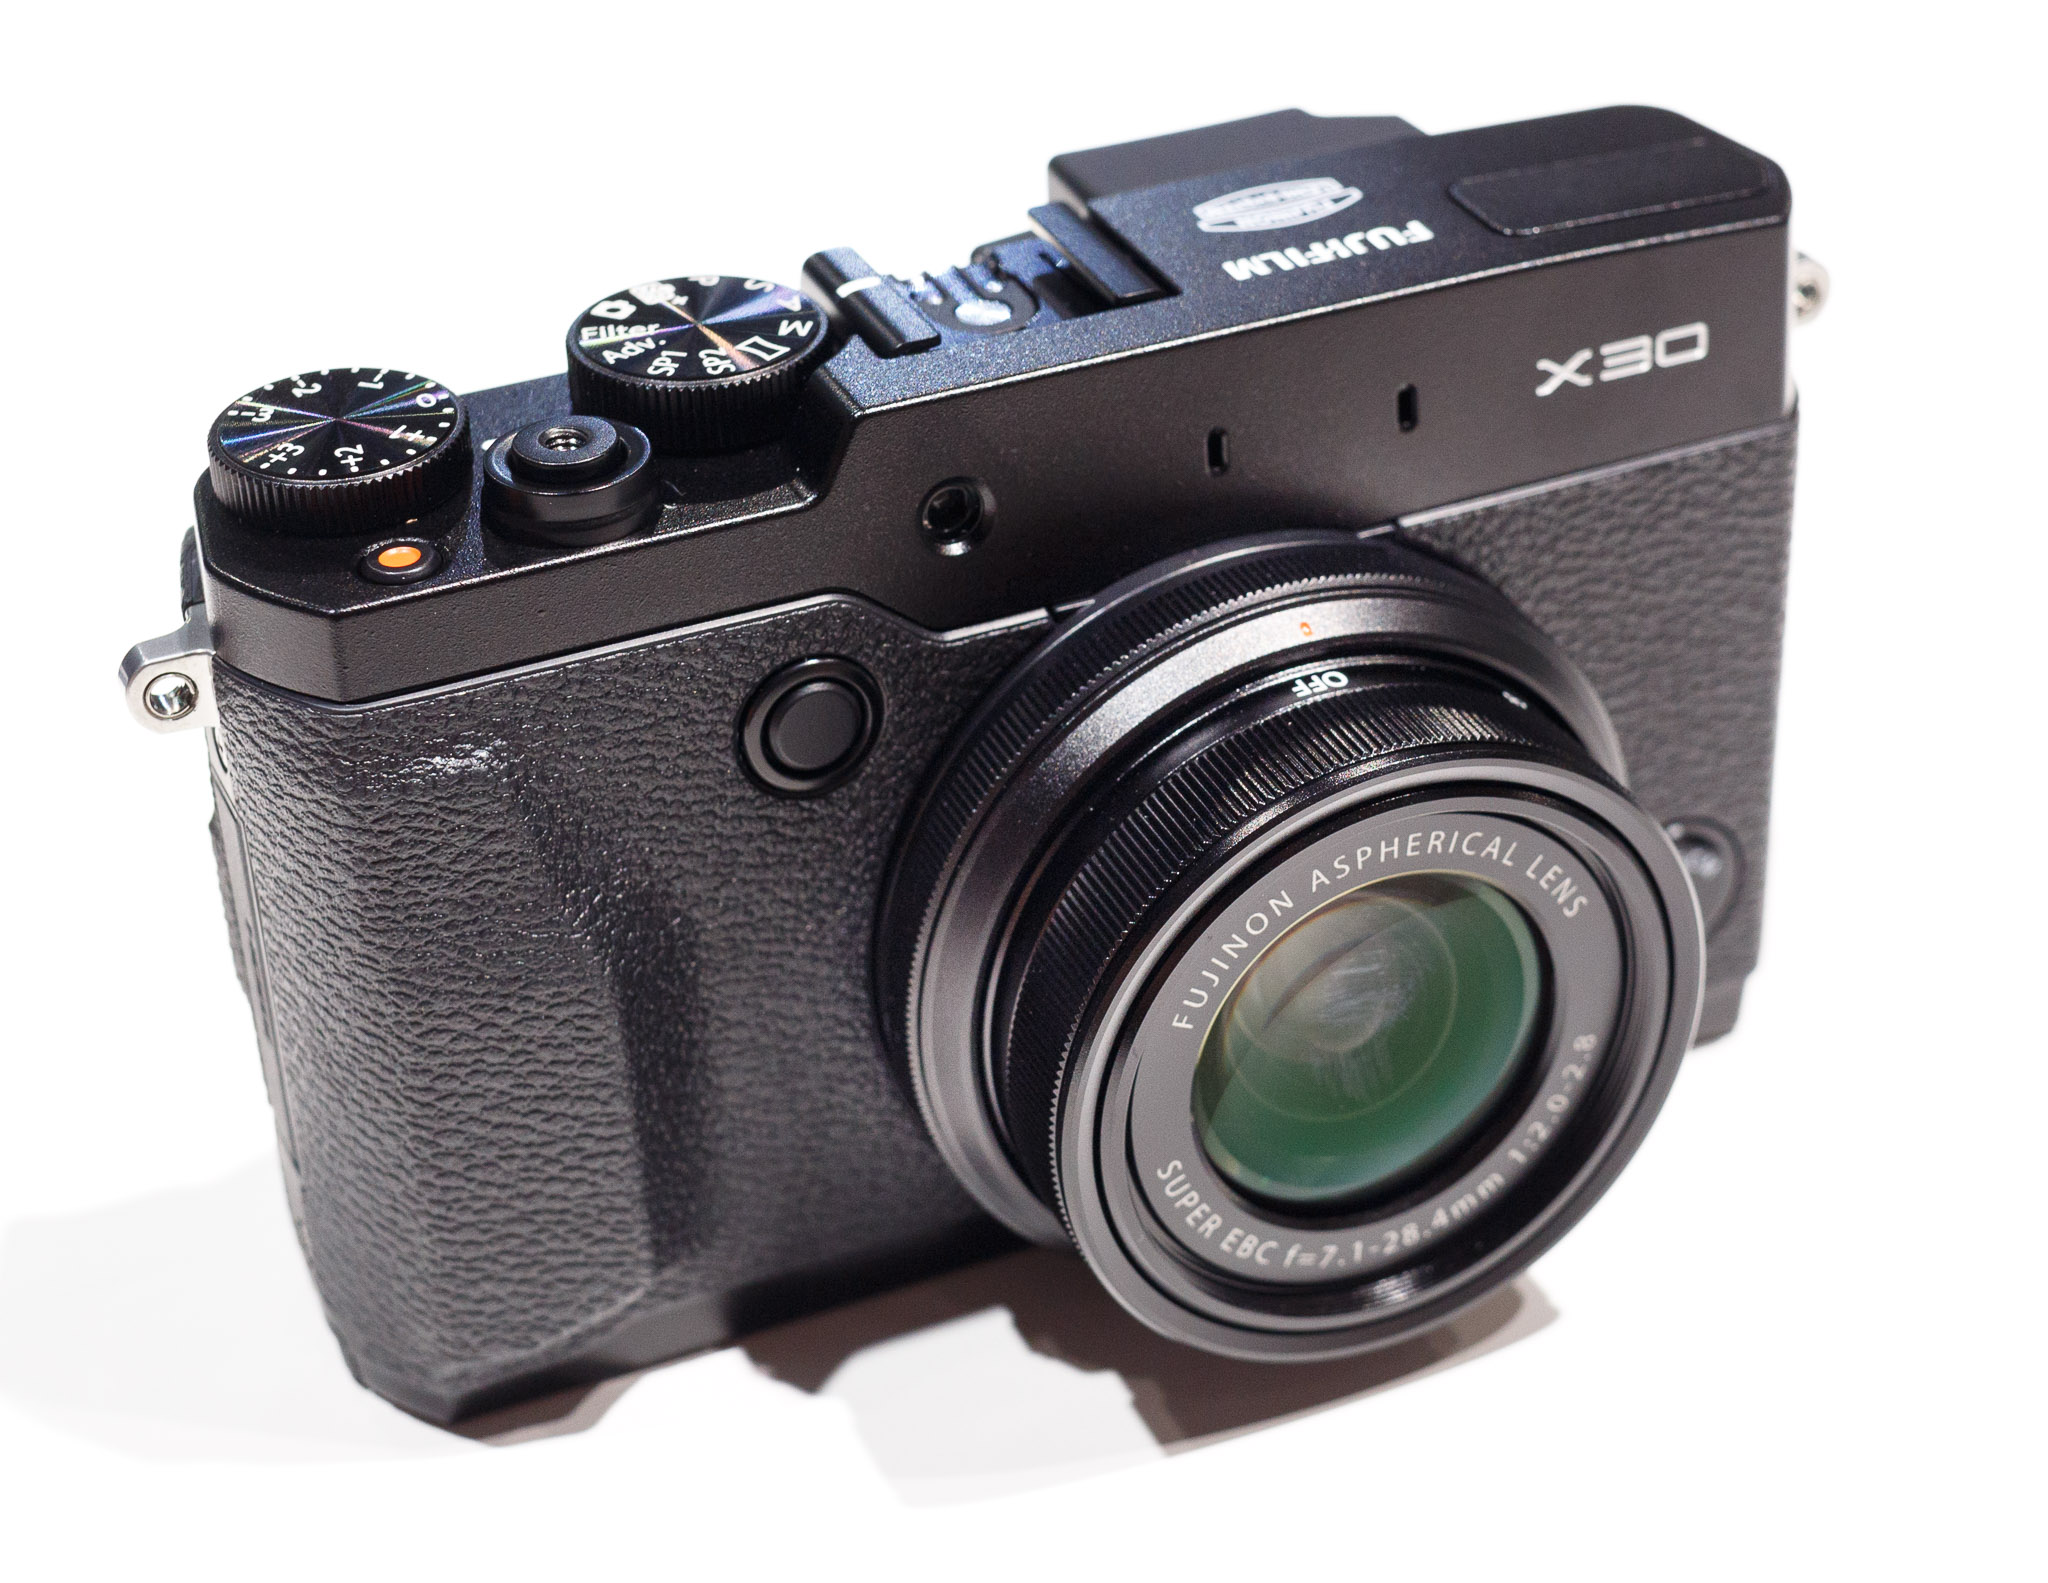 The $600 Fujifilm X30 doesn't have interchangeable lenses, but it embodies the shift toward high-end compact cameras.